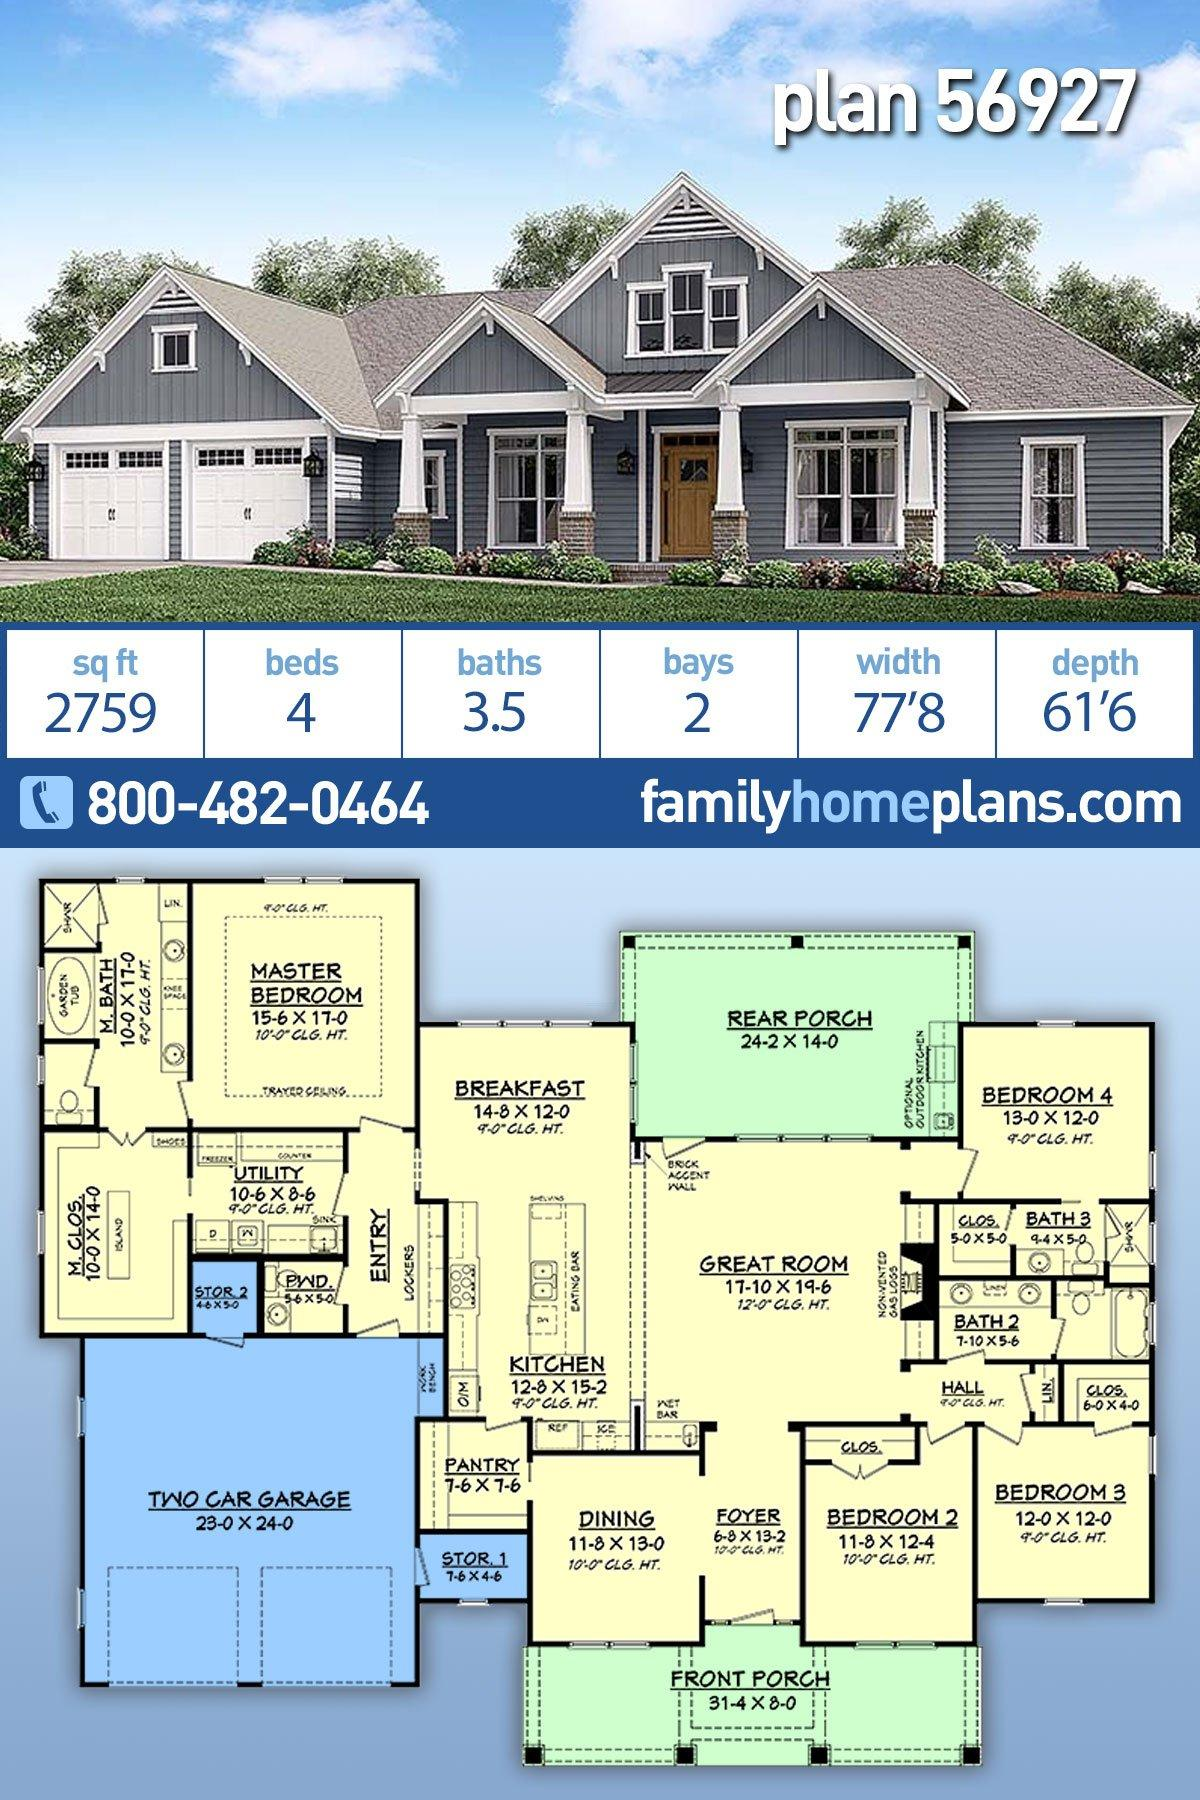 Country, Craftsman, Traditional House Plan 56927 with 4 Beds, 4 Baths, 2 Car Garage